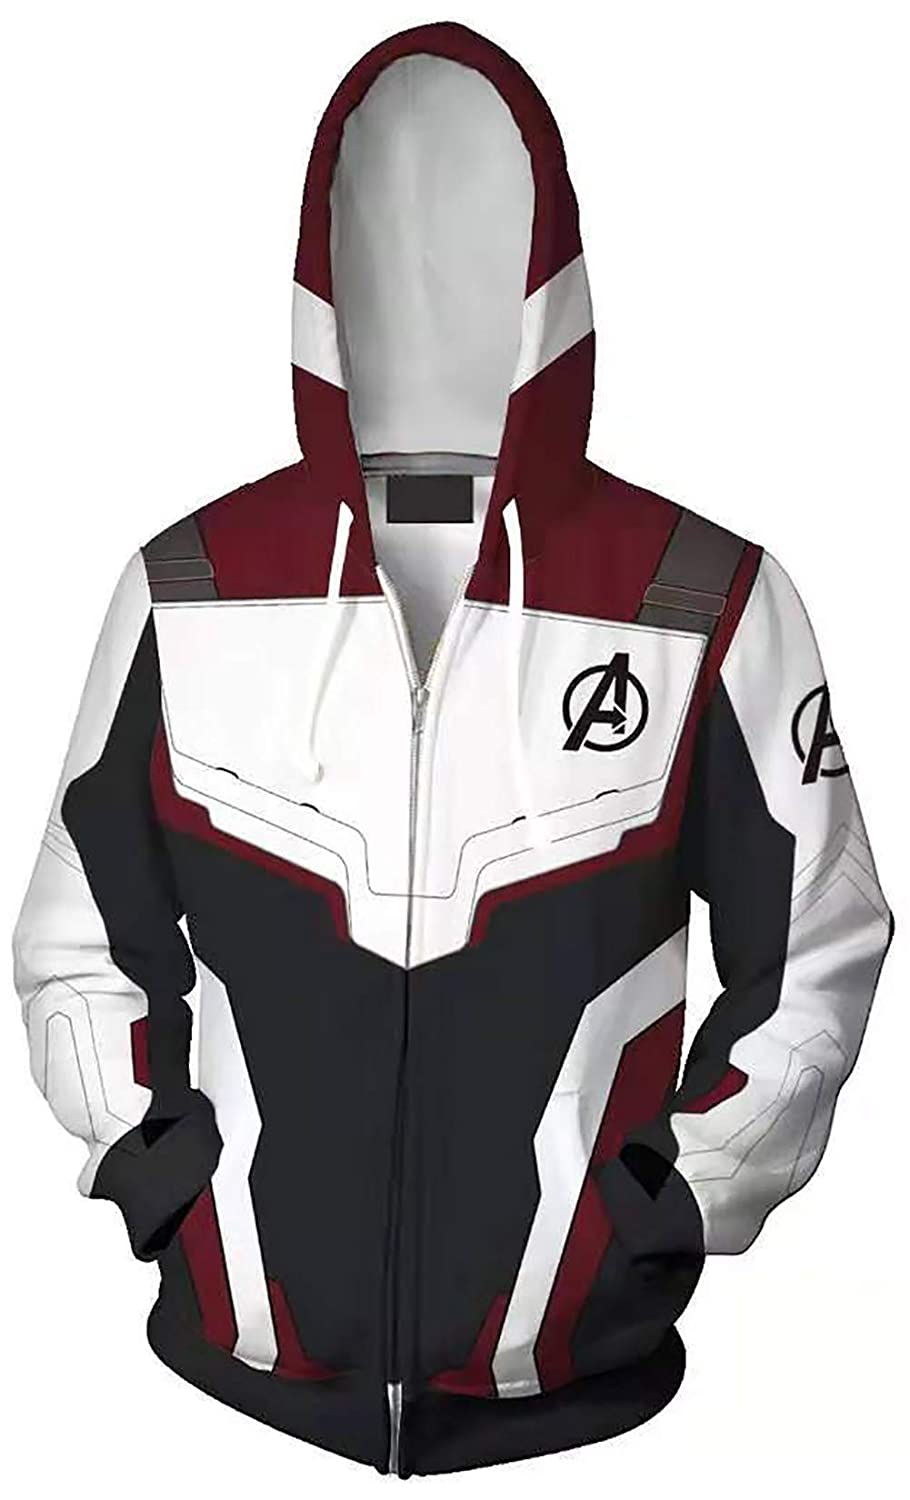 The Avengers 4 Endgame 3D Hoodie Cosplay Costume Sweater Jacket T-shirt Pants